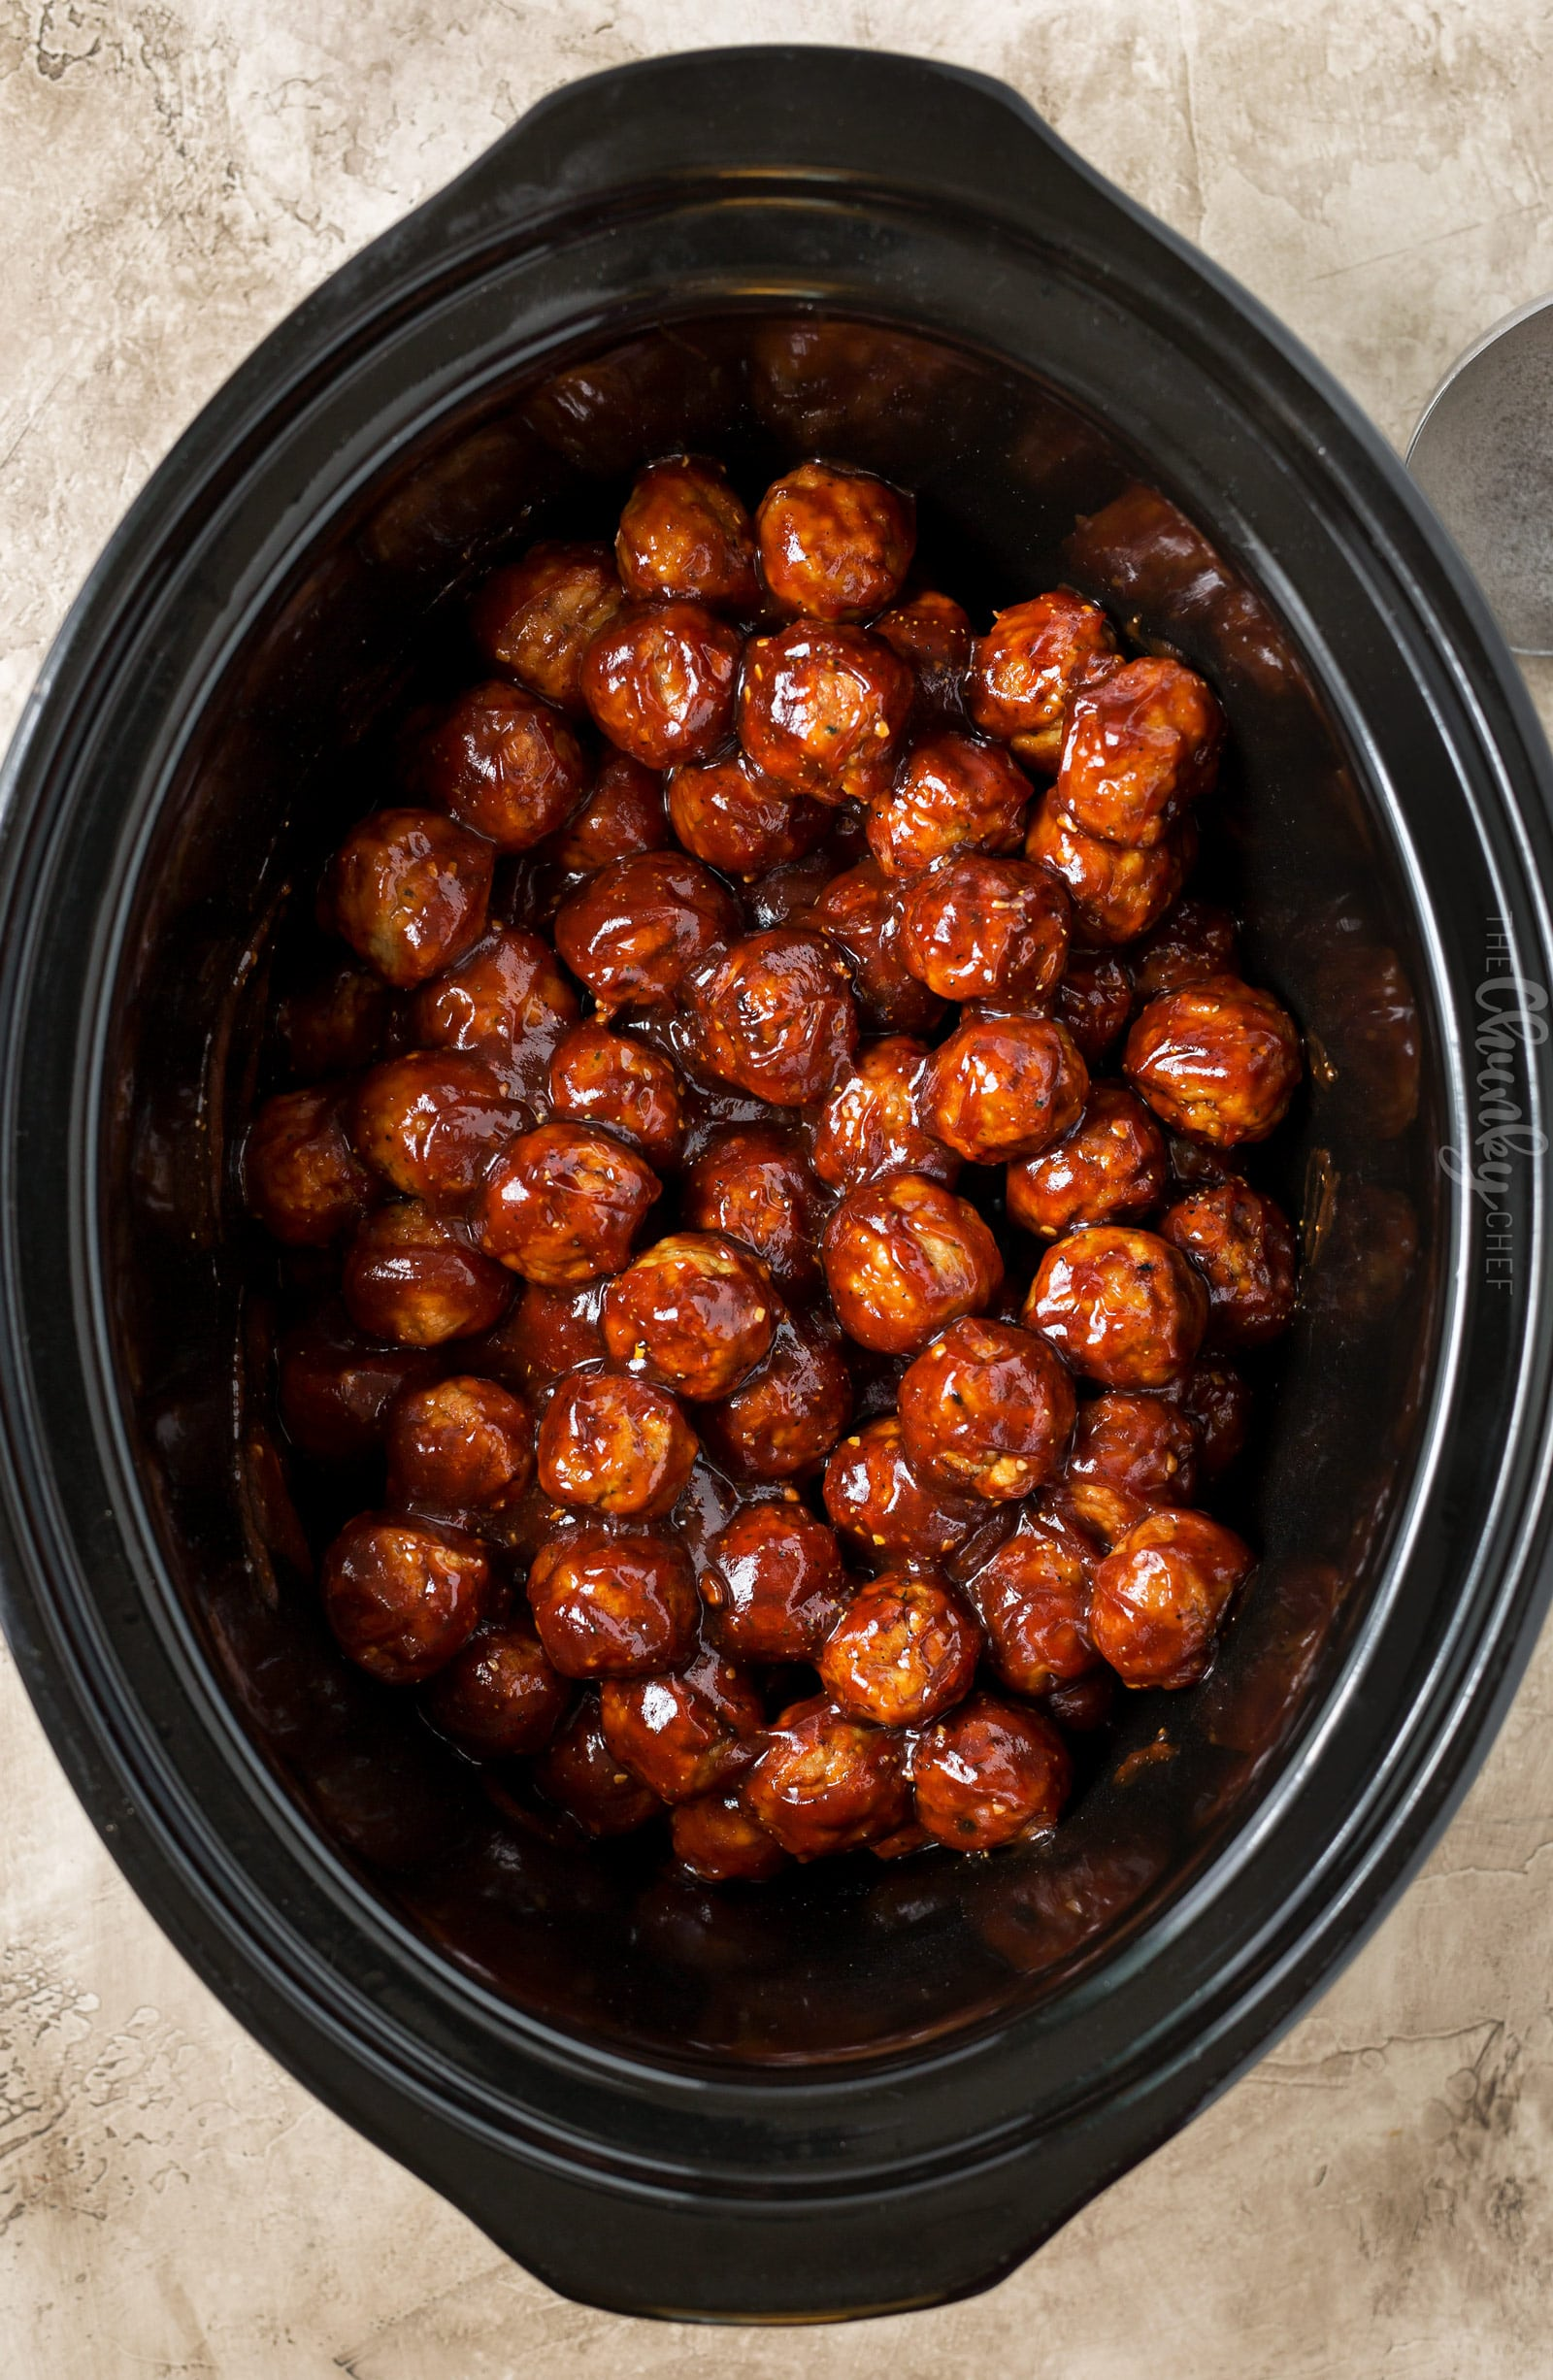 Cranberry BBQ Crockpot Meatballs | The perfect appetizer for a party or game day... with just 3 ingredients and just 5 minutes of prep!  Pop it all in your slow cooker and enjoy! | https://www.thechunkychef.com | #appetizer #meatballs #party #easyrecipe #crockpot #slowcooker